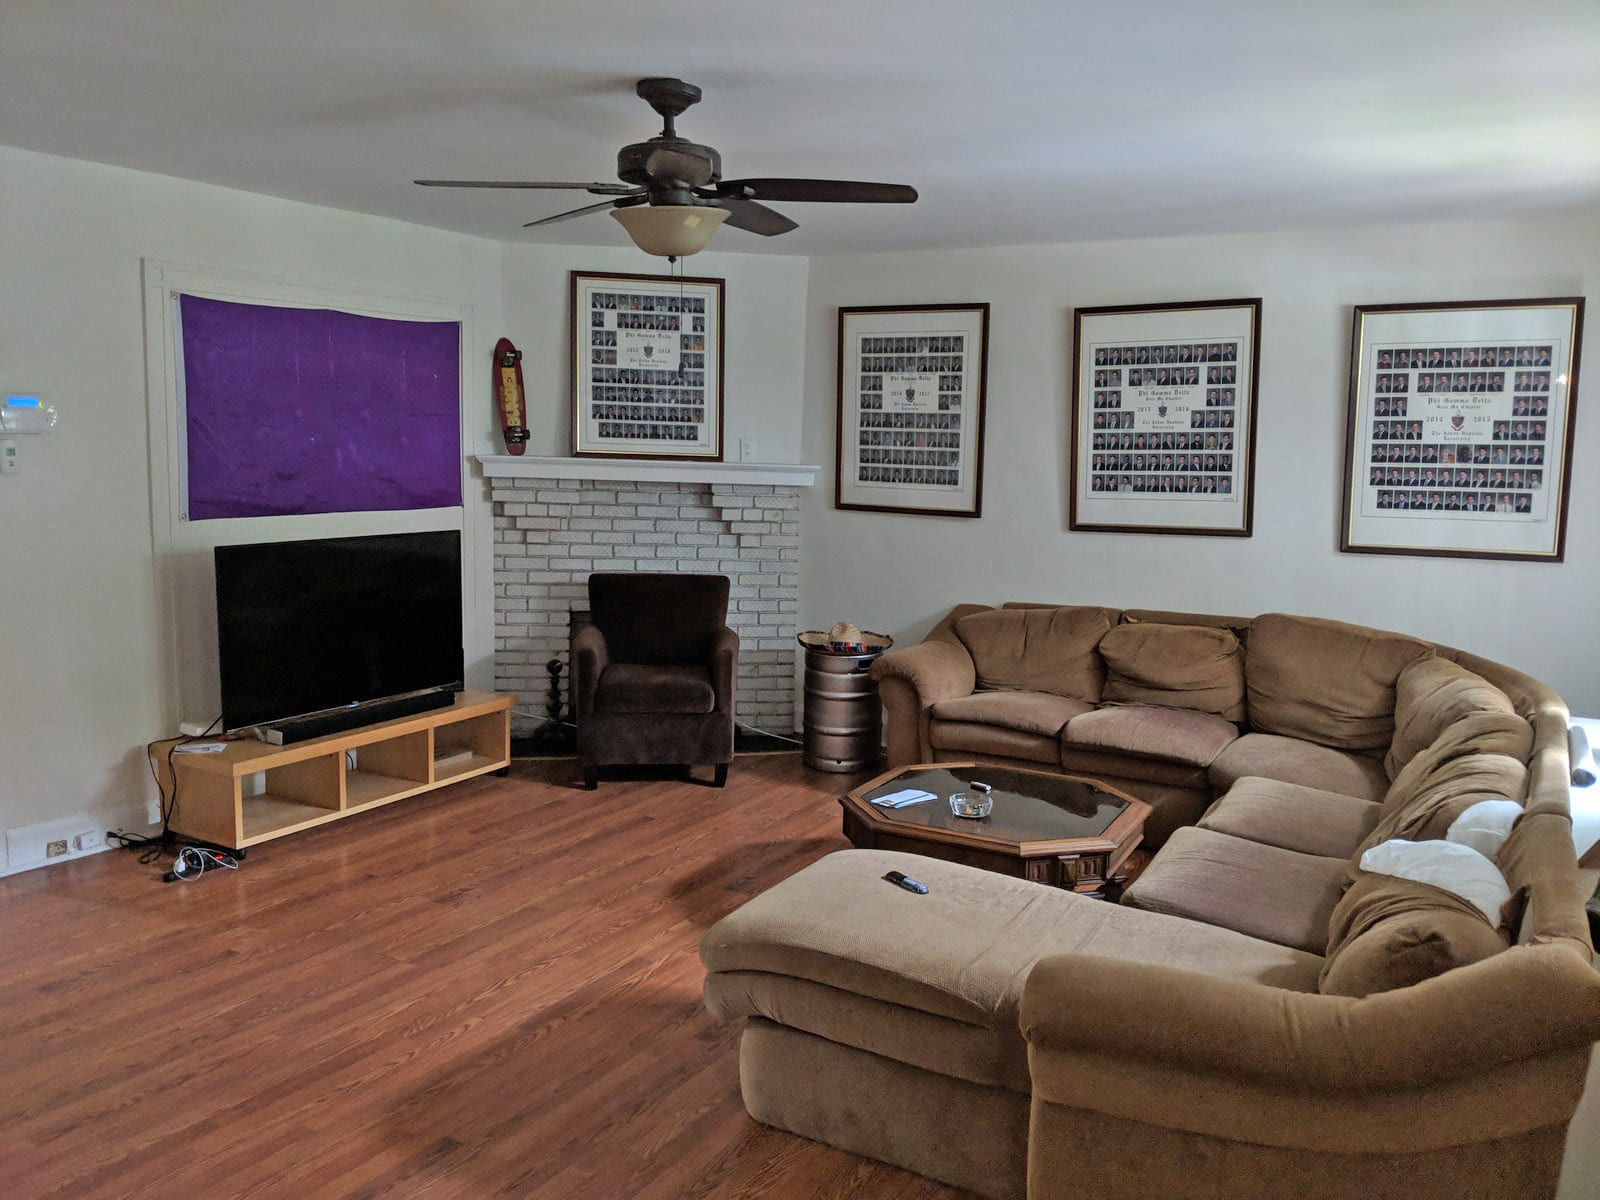 207 E. 33rd Street – 5 Bedroom Rental Available 6/1/19!